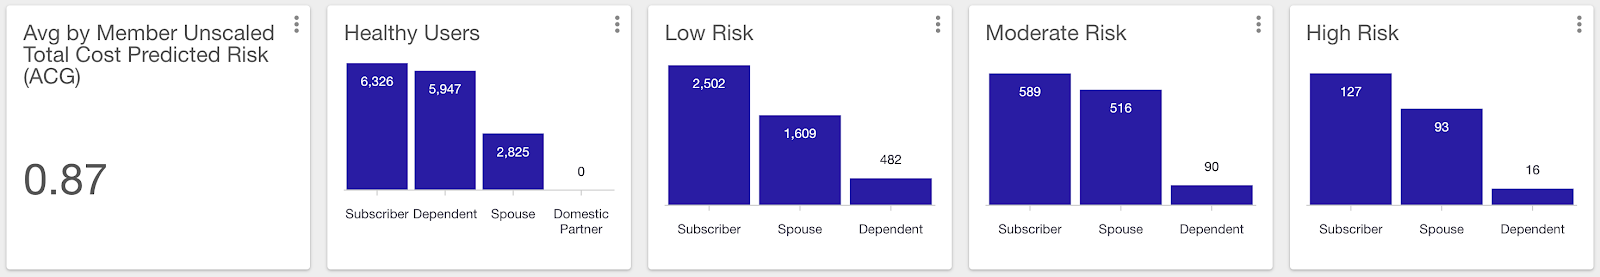 Charts showing risk score by type of subscriber and risk level